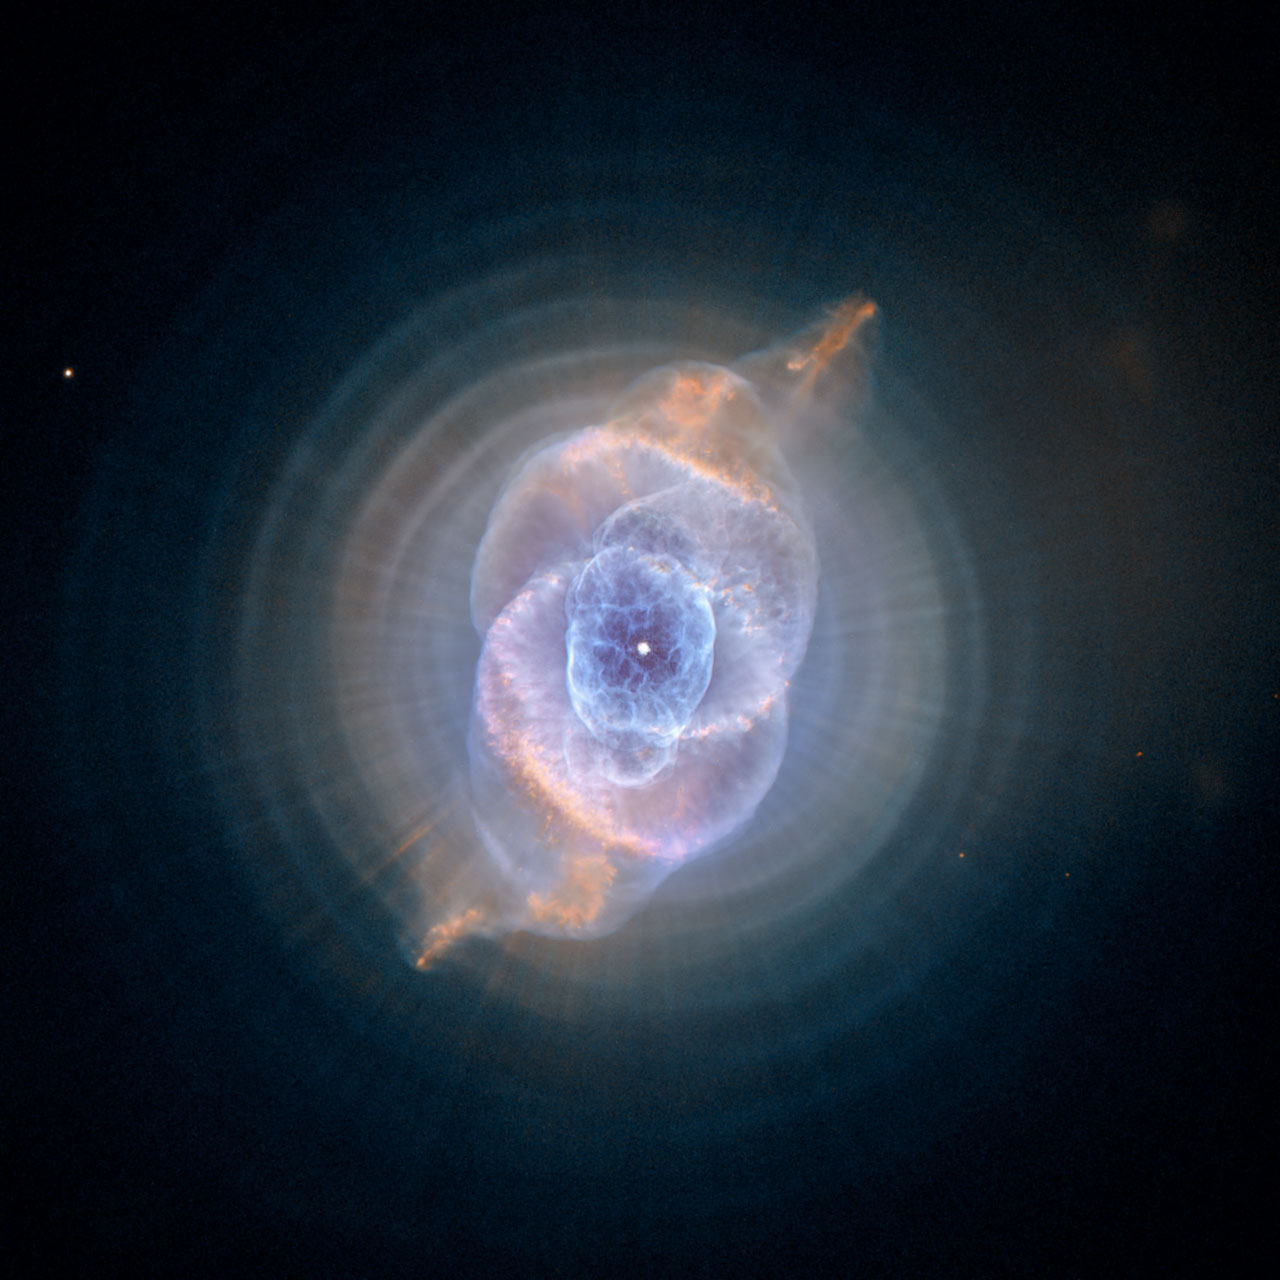 When Our Sun Dies, The Planetary Nebula Will Be Faint